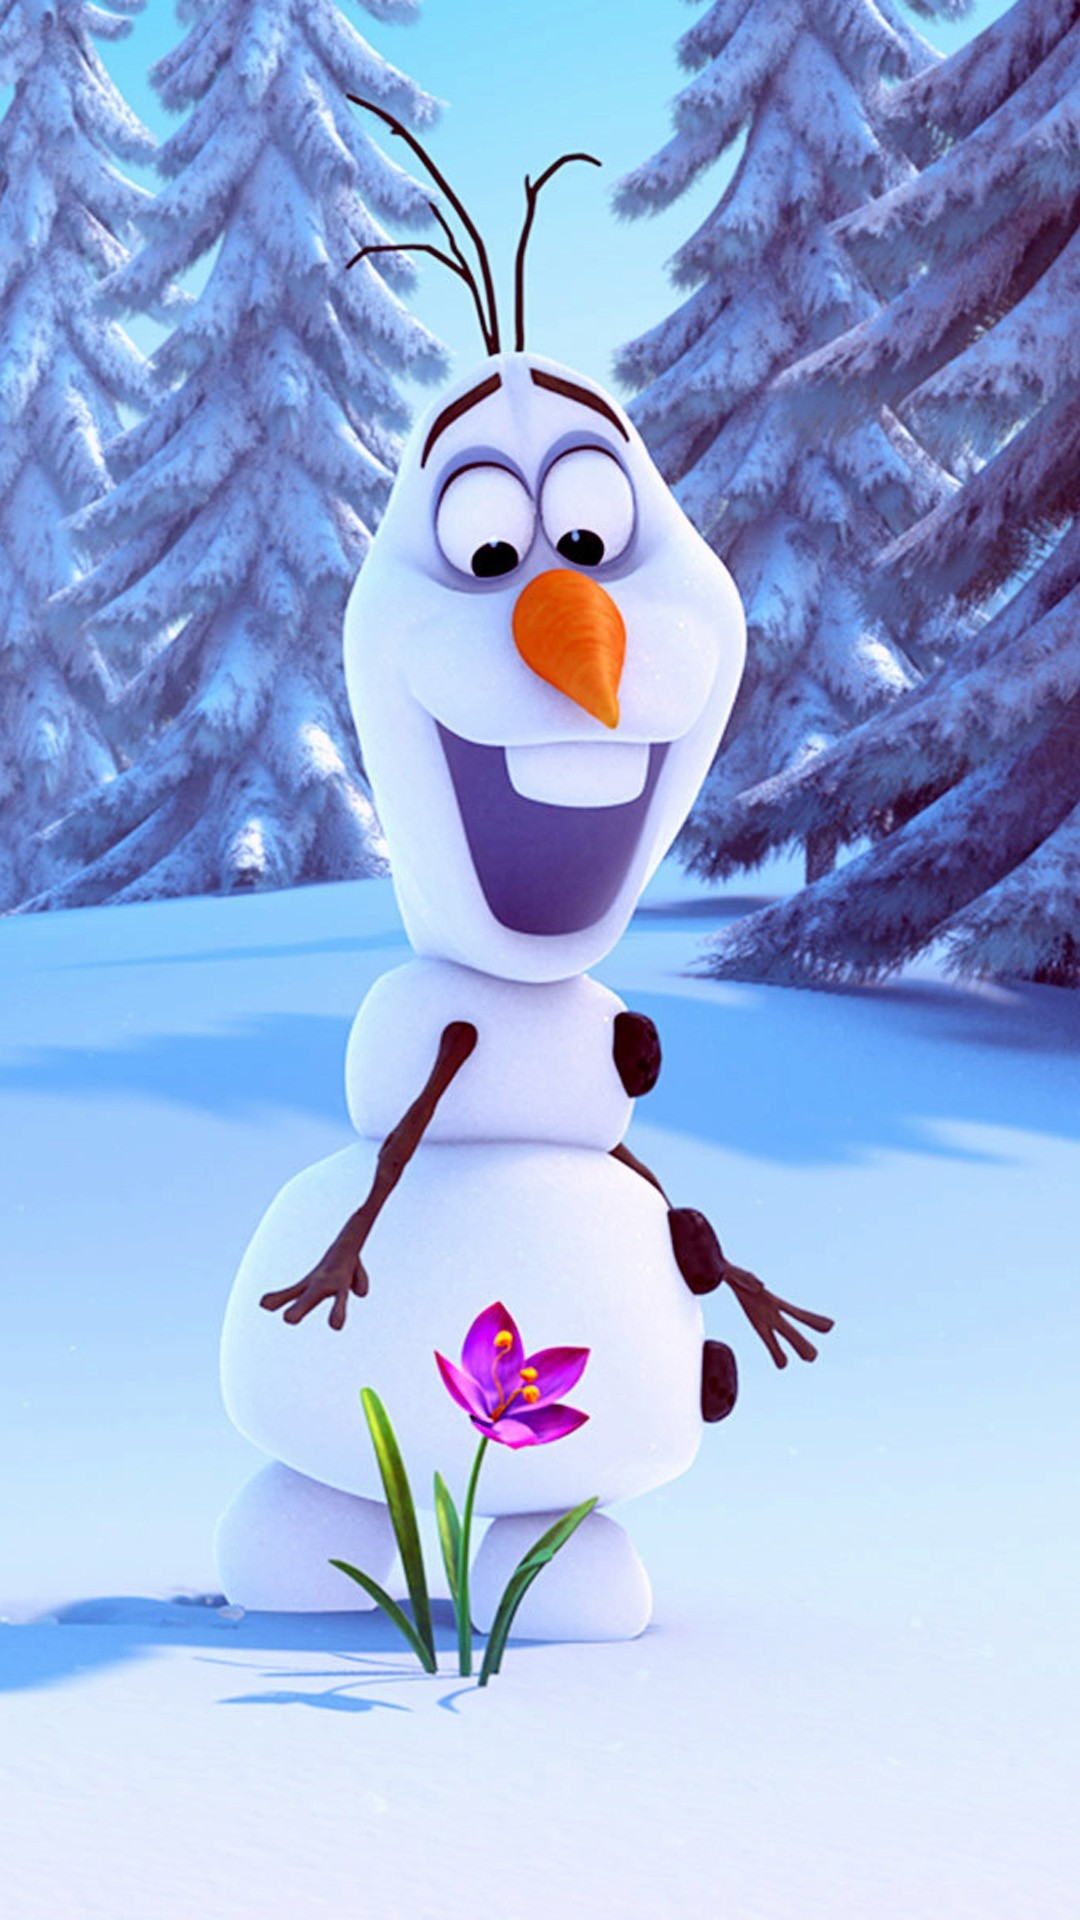 Olaf Christmas Wallpaper (65+ images)